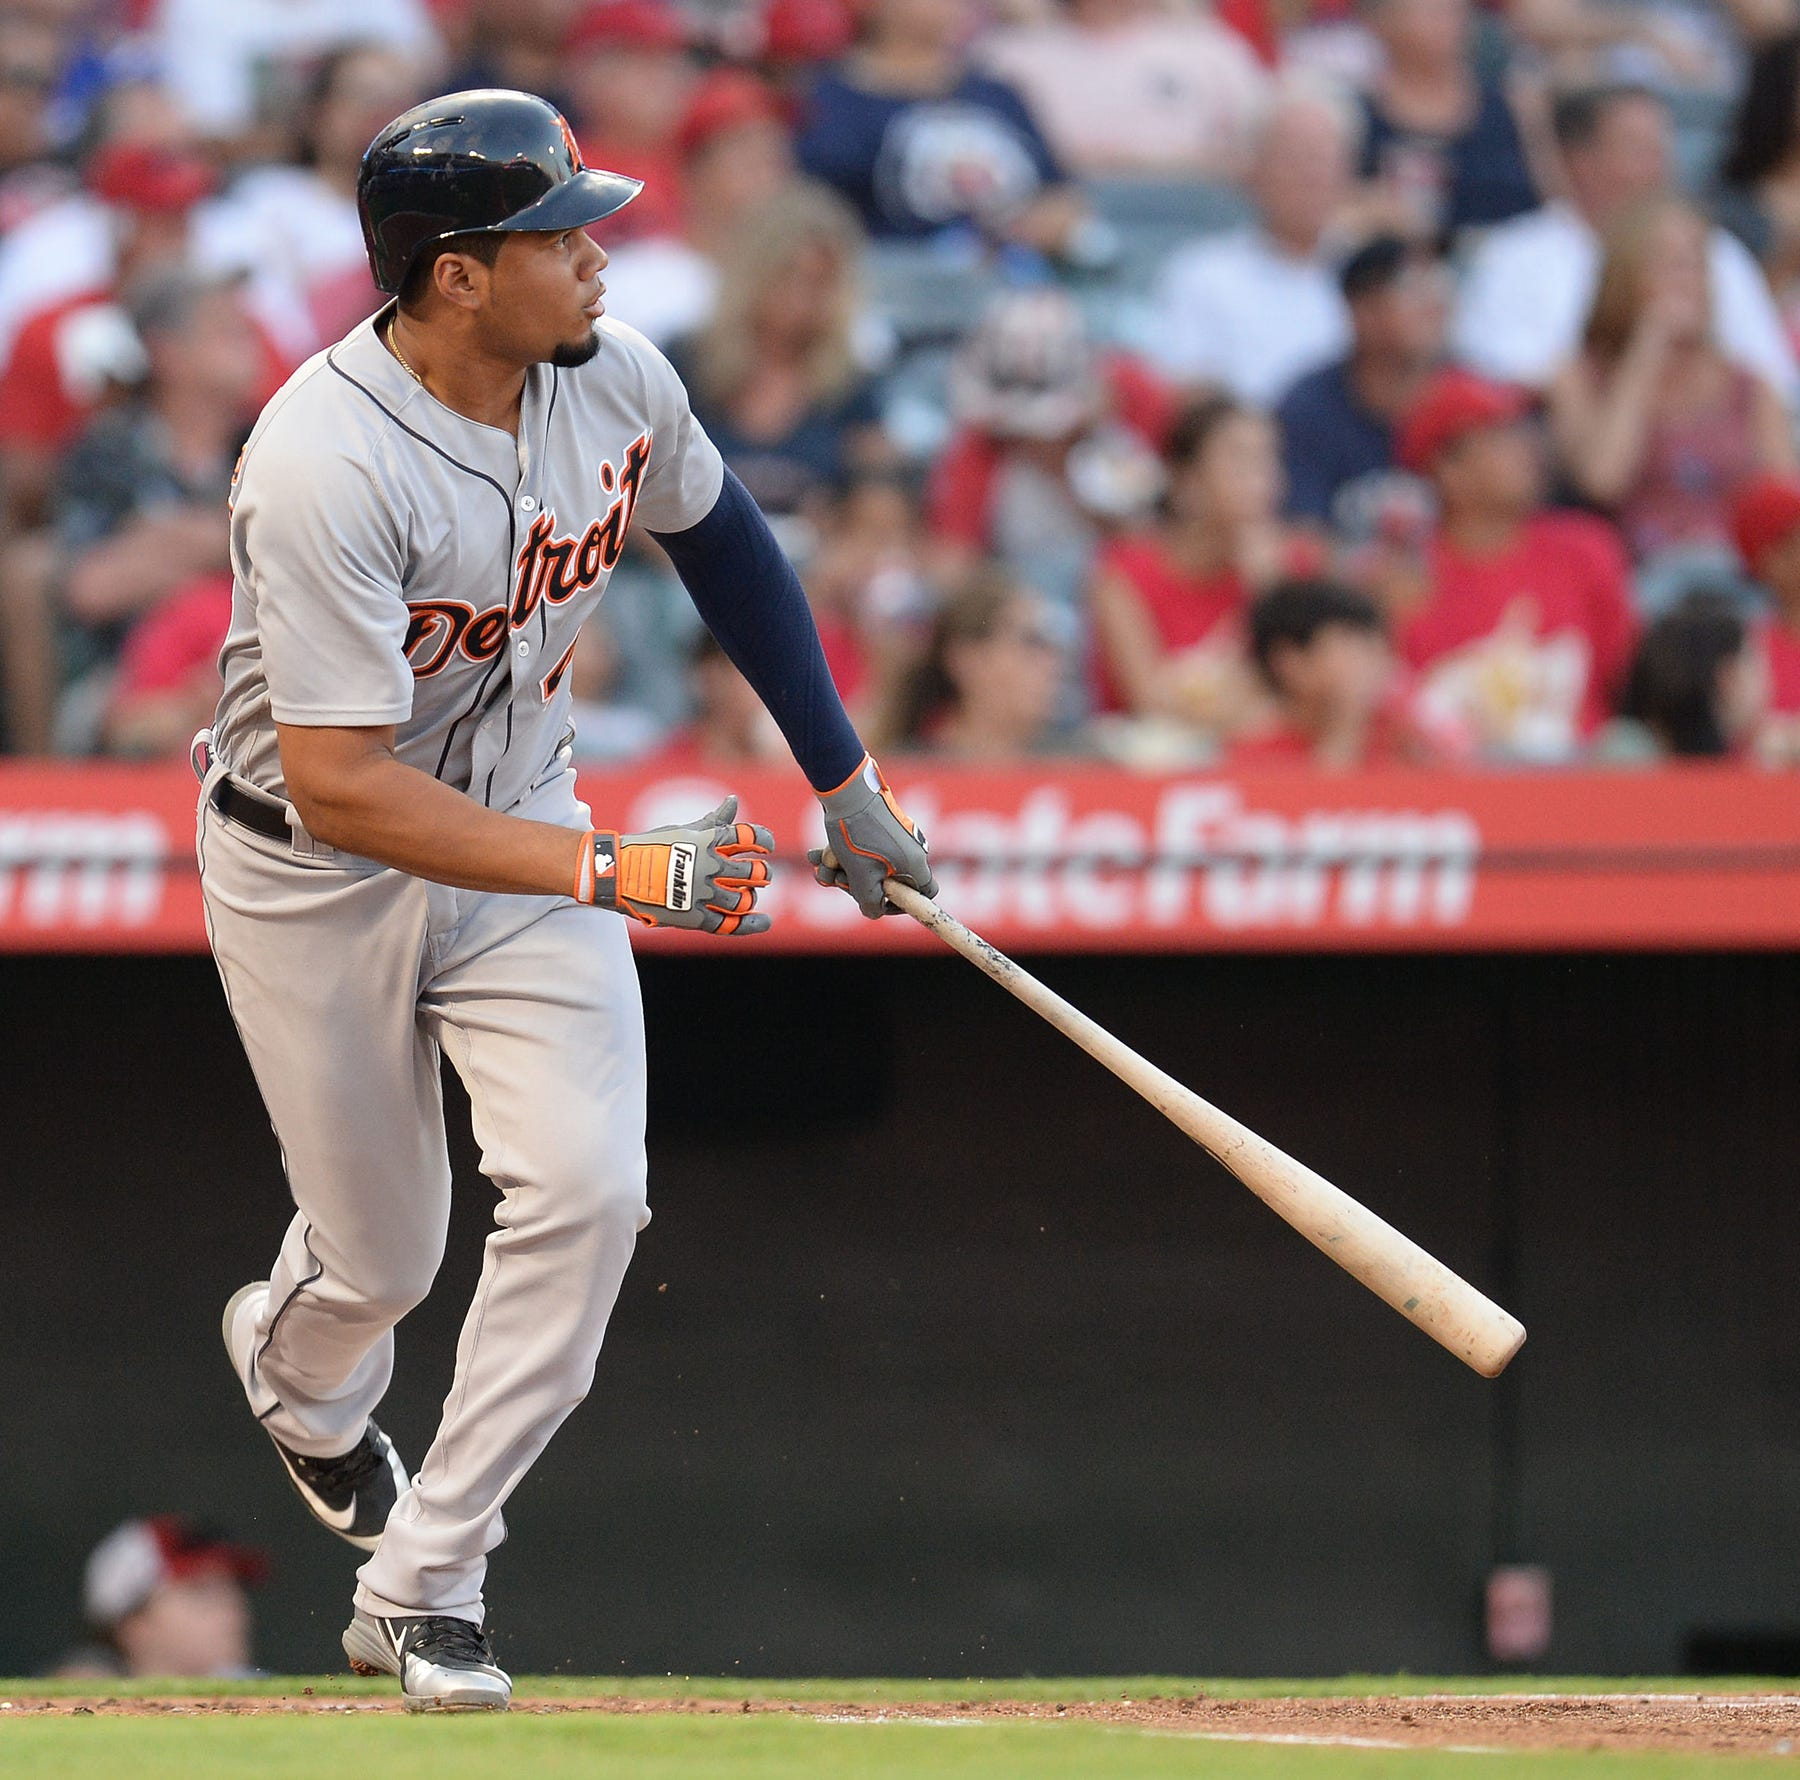 Detroit Tigers lose to Los Angeles Angels, 11-5